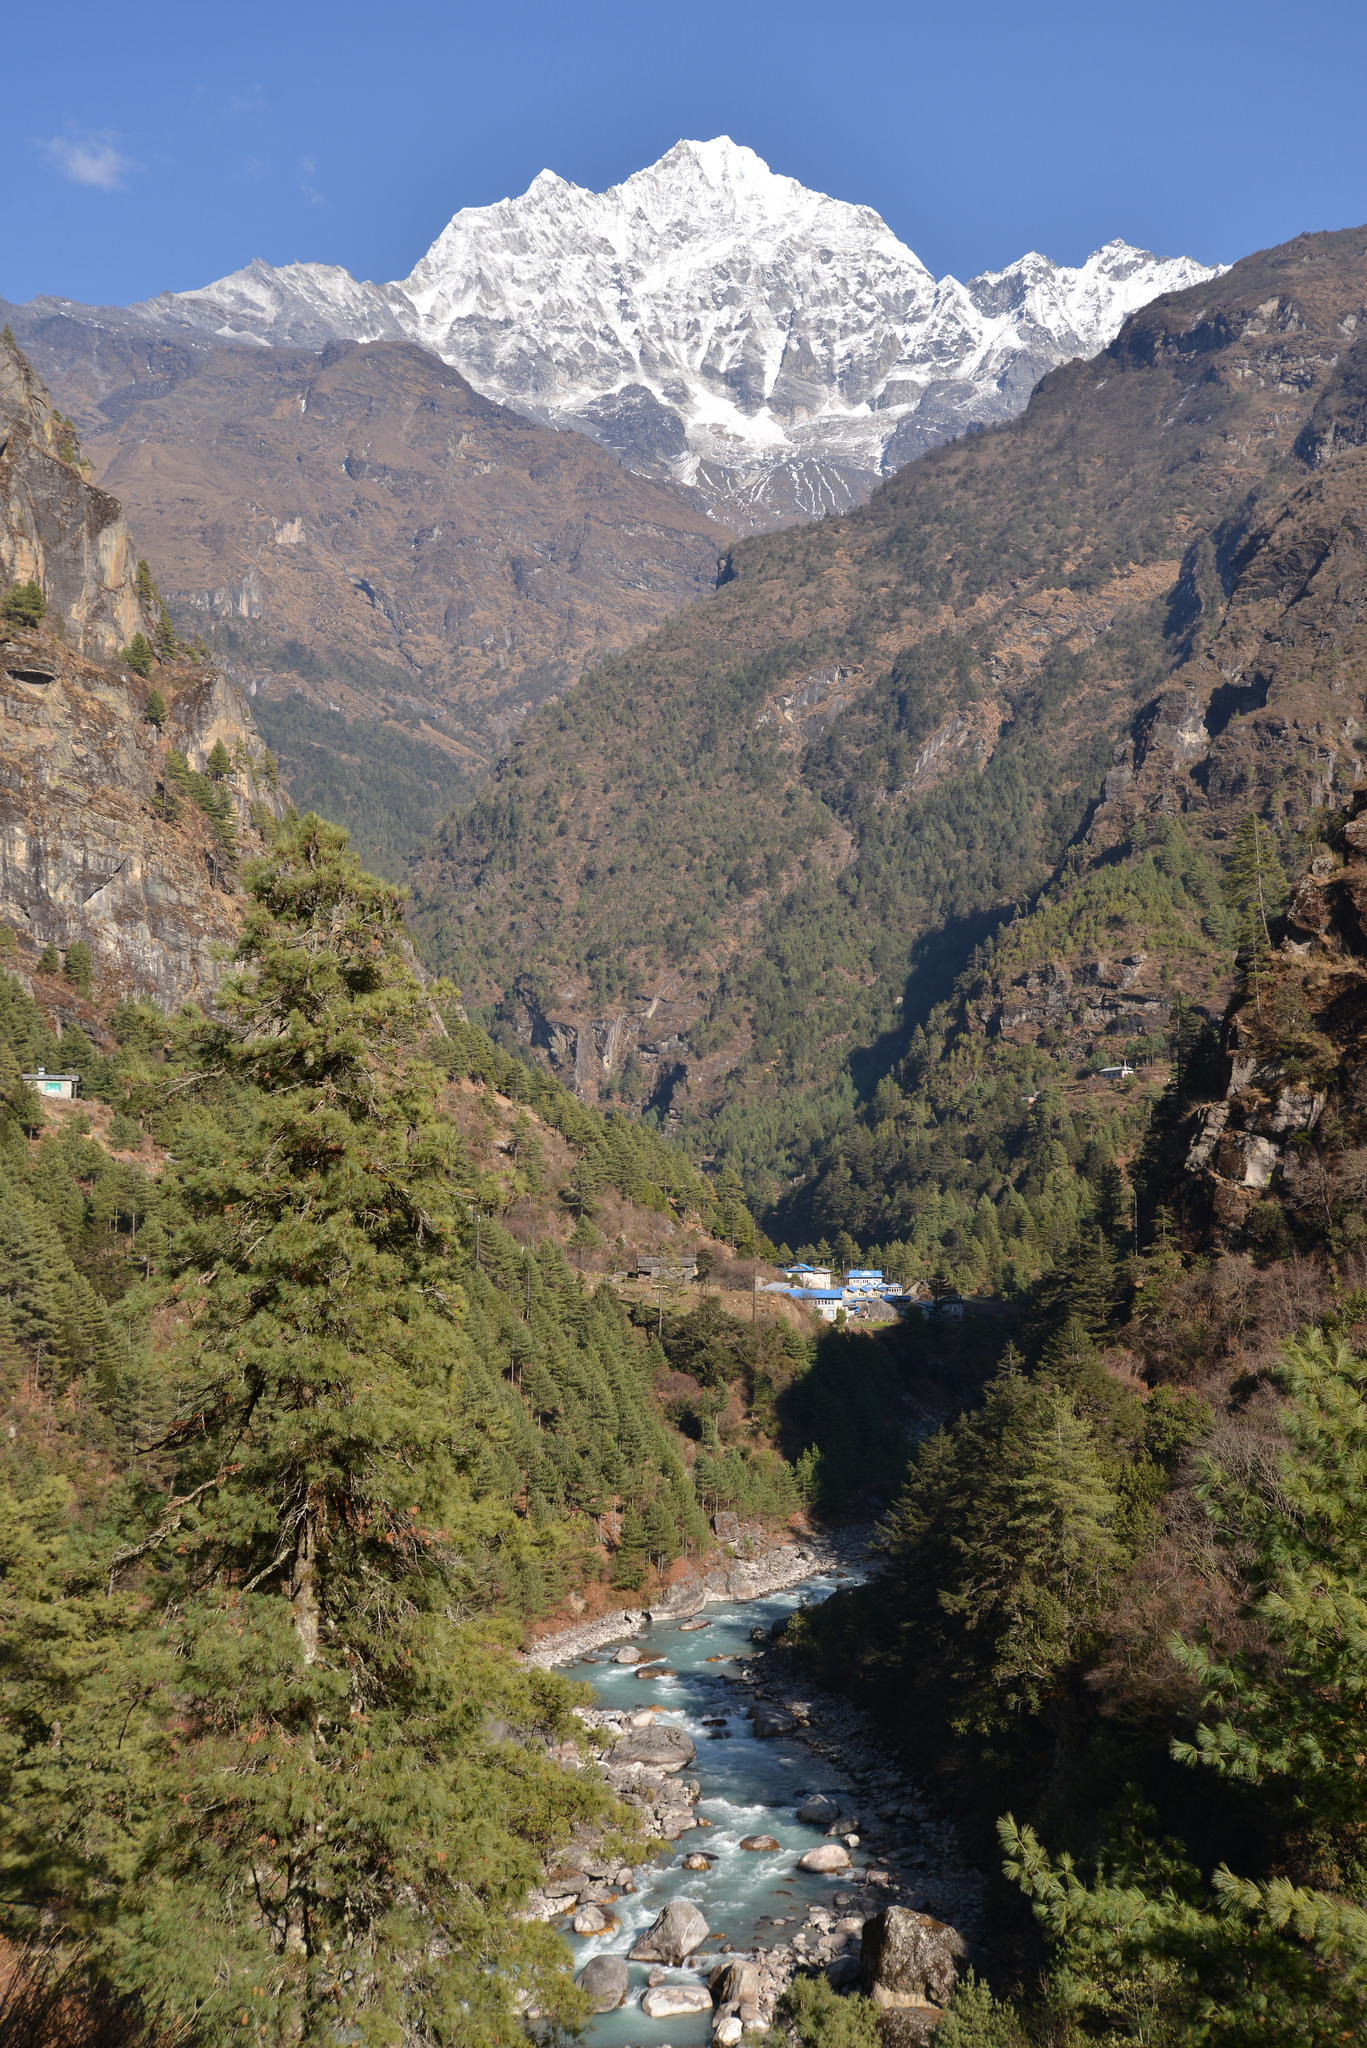 A view of everest in the background, a valley with a gushing stream in the fore ground - everest base camp